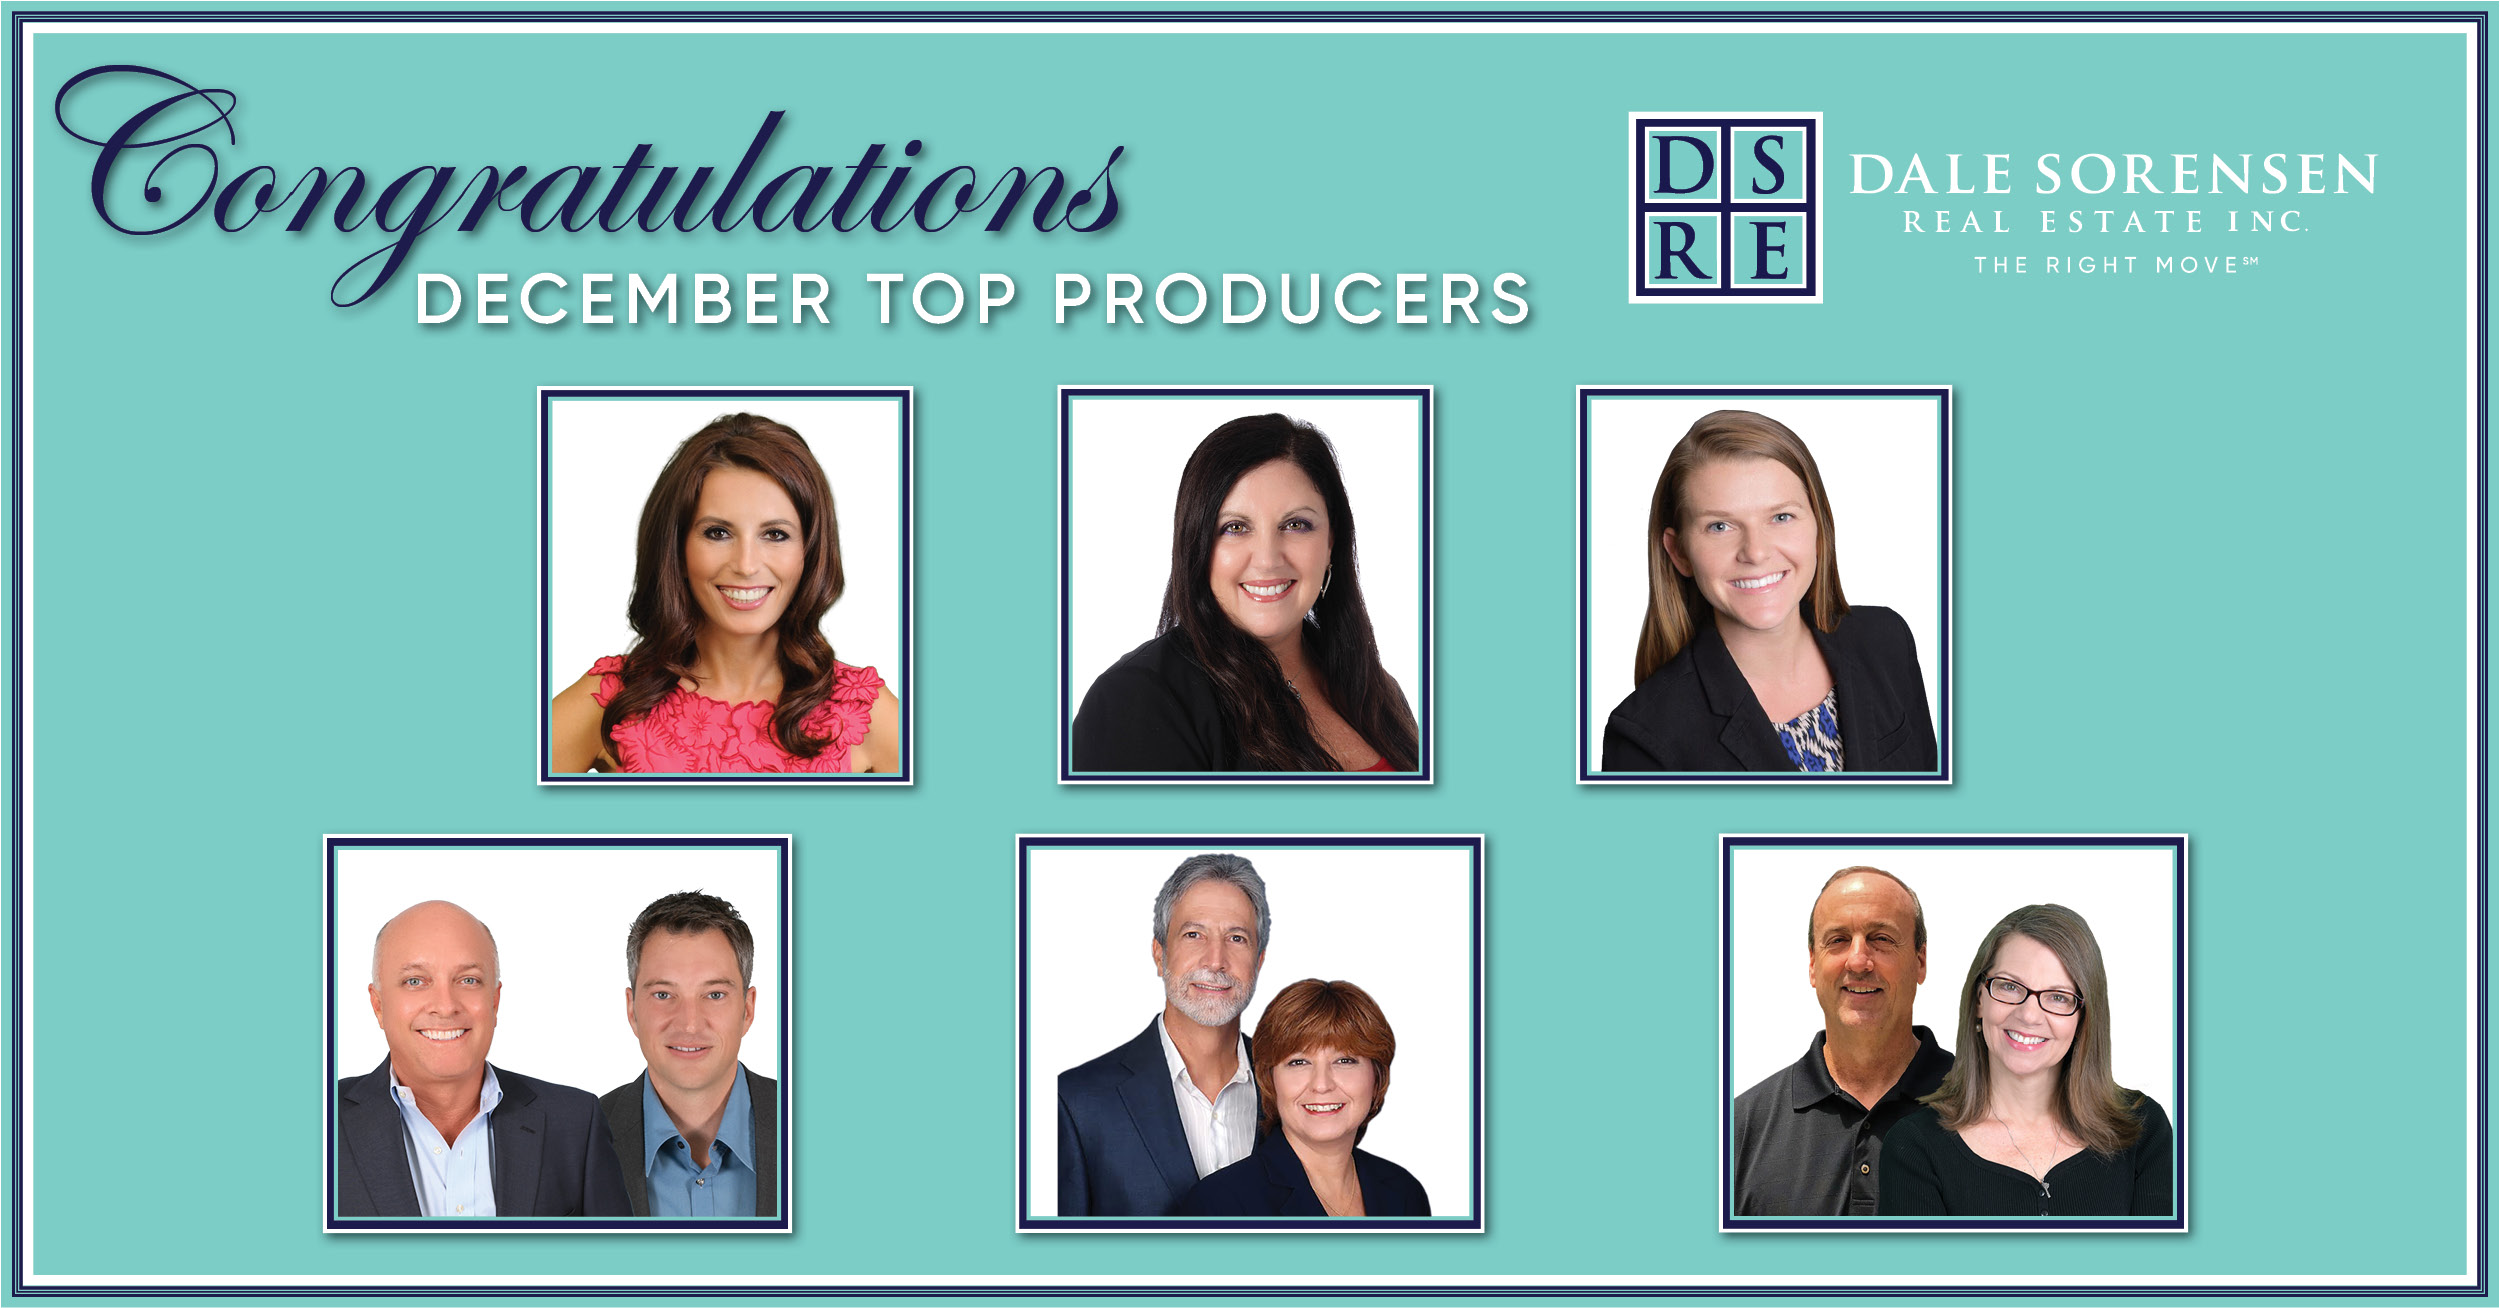 Congratulations December Top Producers DSRE Dale Sorensen Real Estate Inc. THE RIGHT MOVE